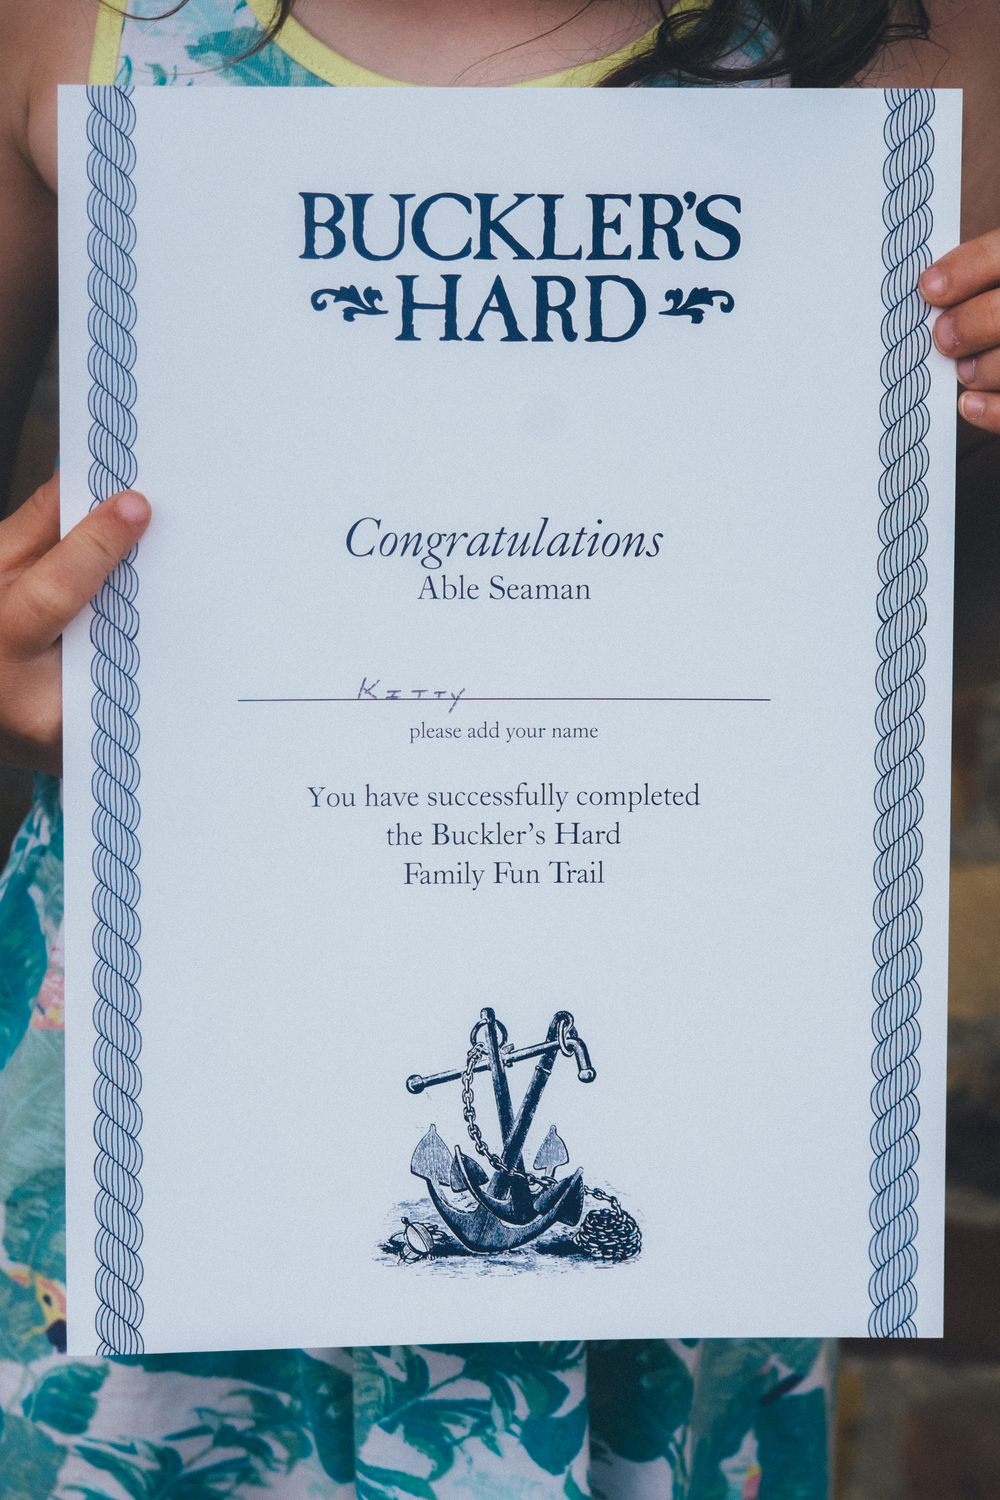 Buckler's Hard kids trail certificate